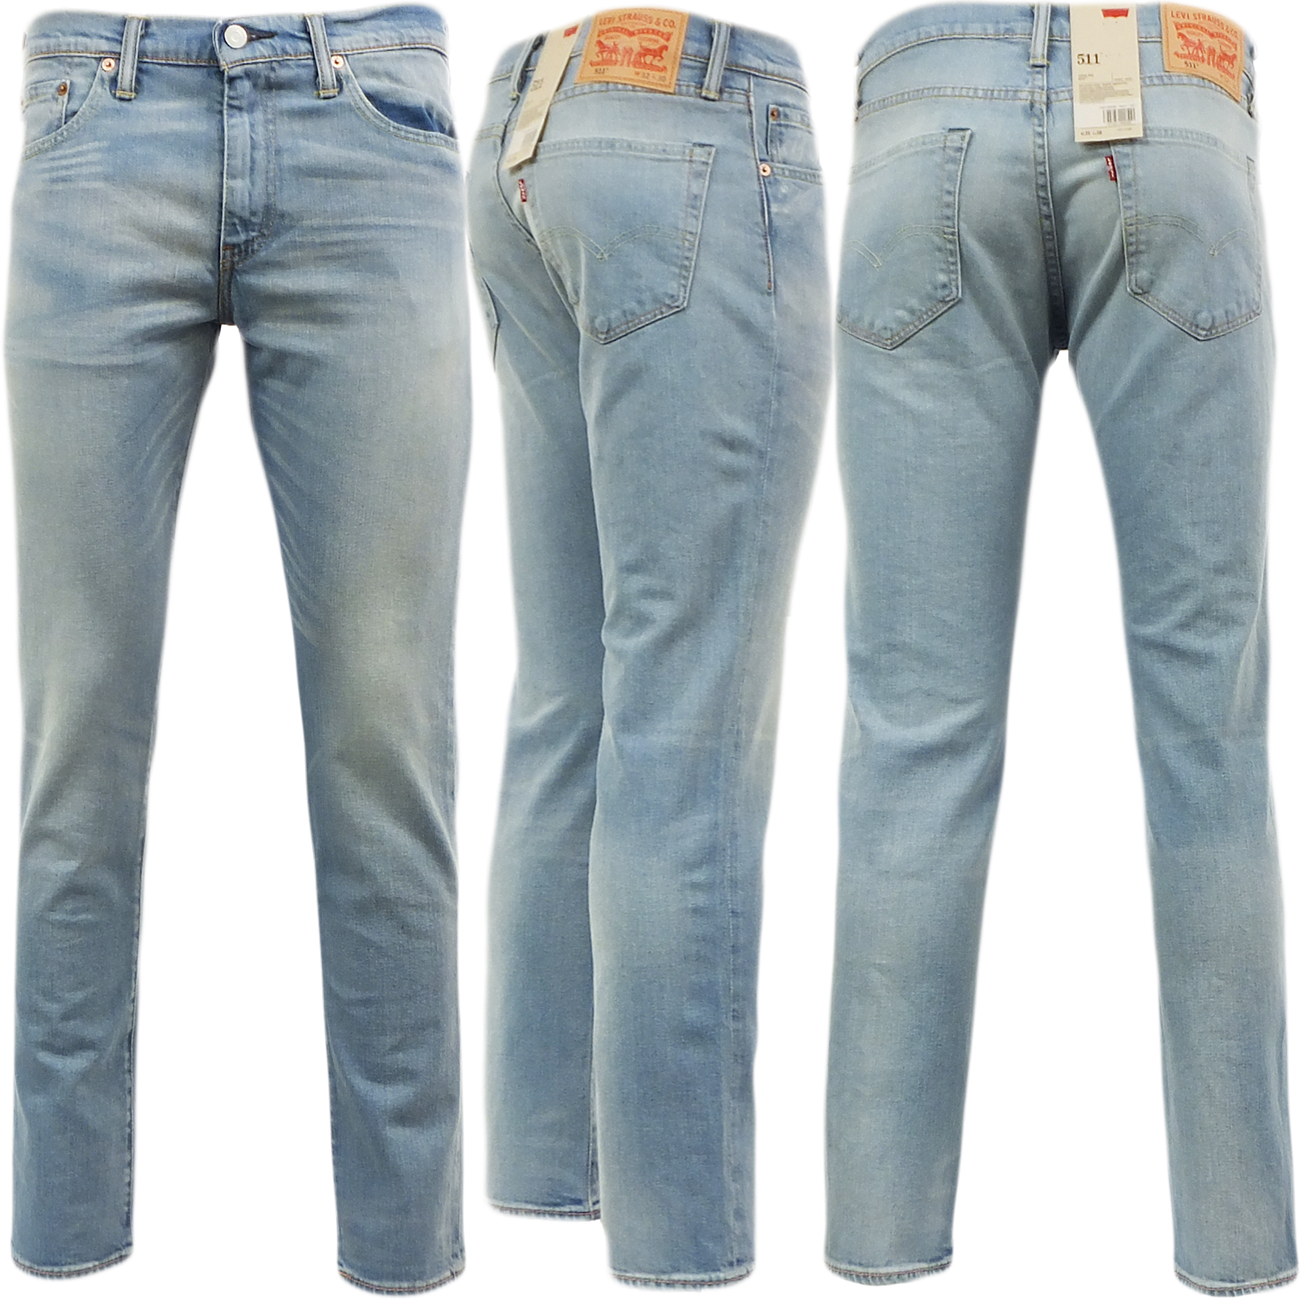 mens levi 511 slim fit jean aber light blue 30 32 34 36 38 ebay. Black Bedroom Furniture Sets. Home Design Ideas